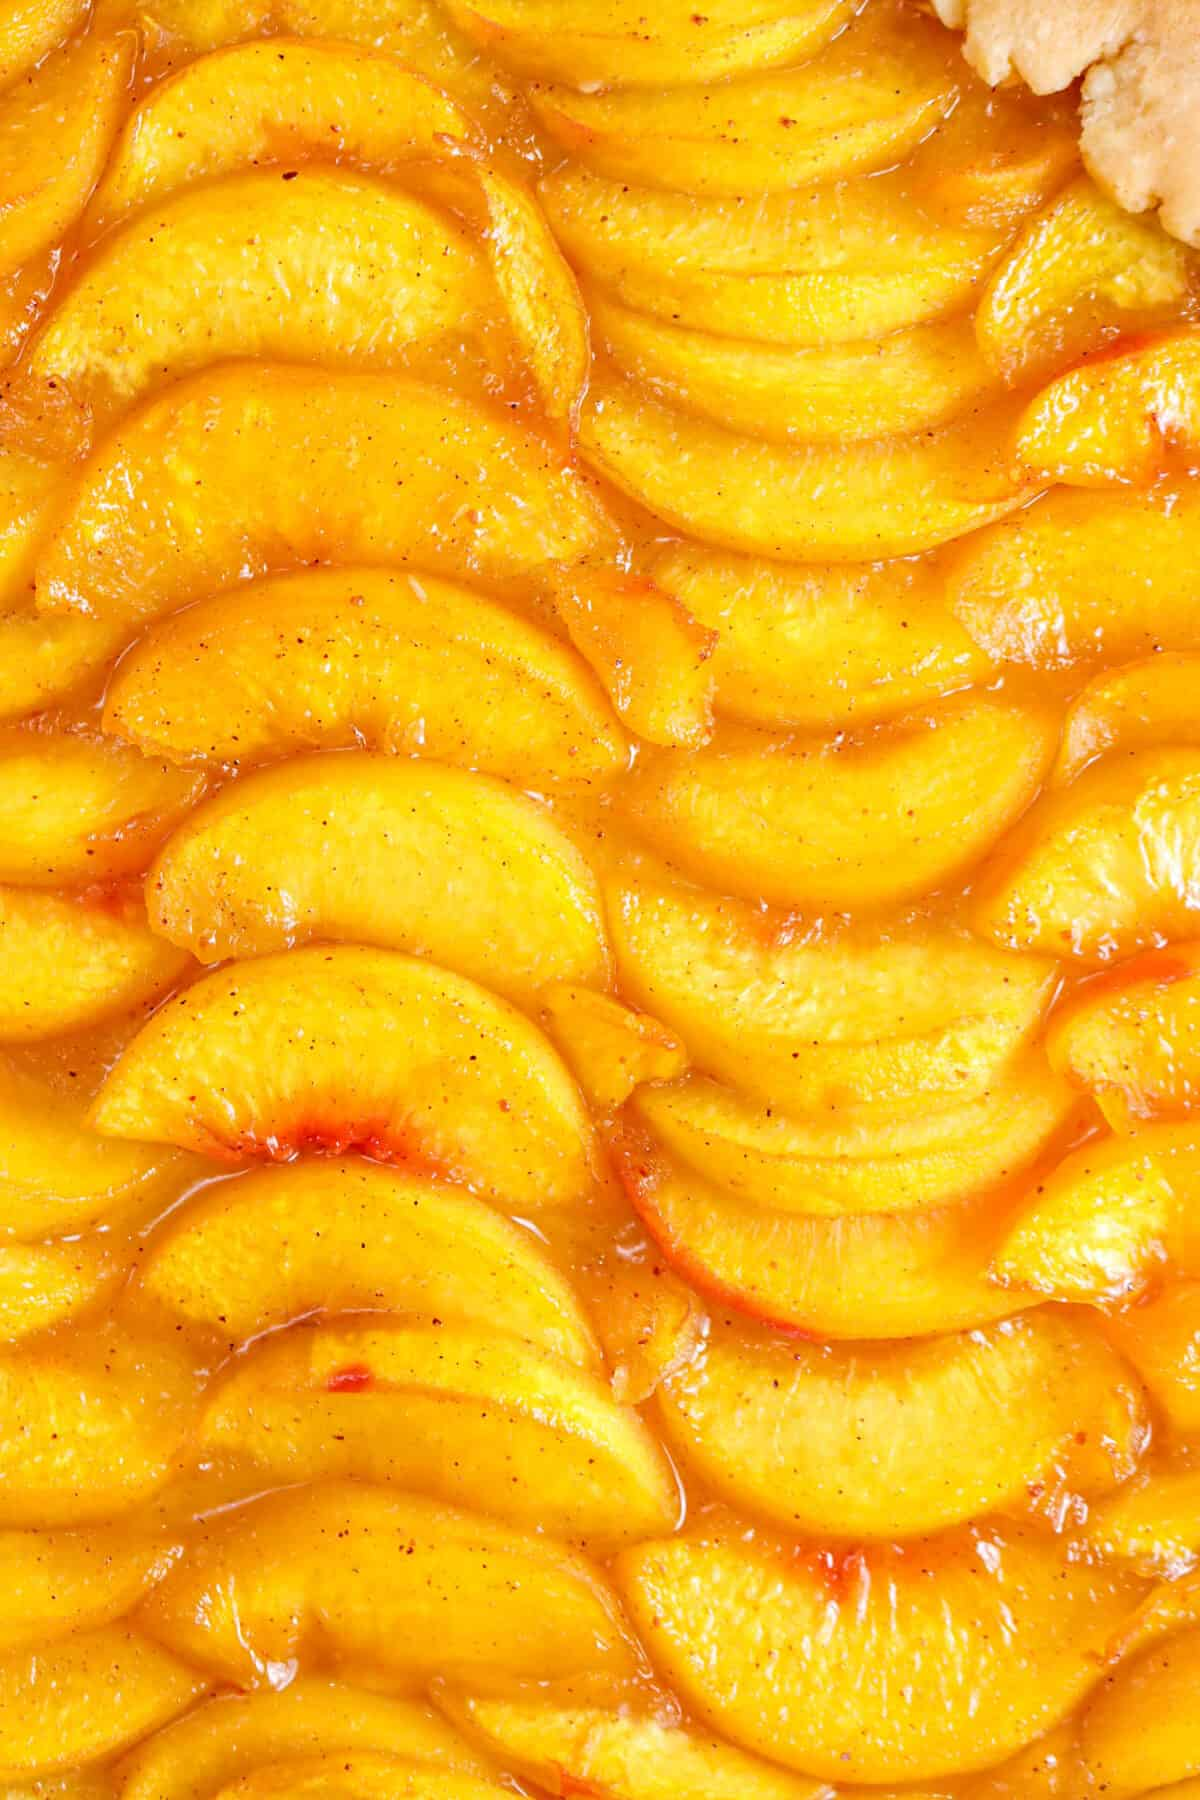 close up of sliced and baked peach slices